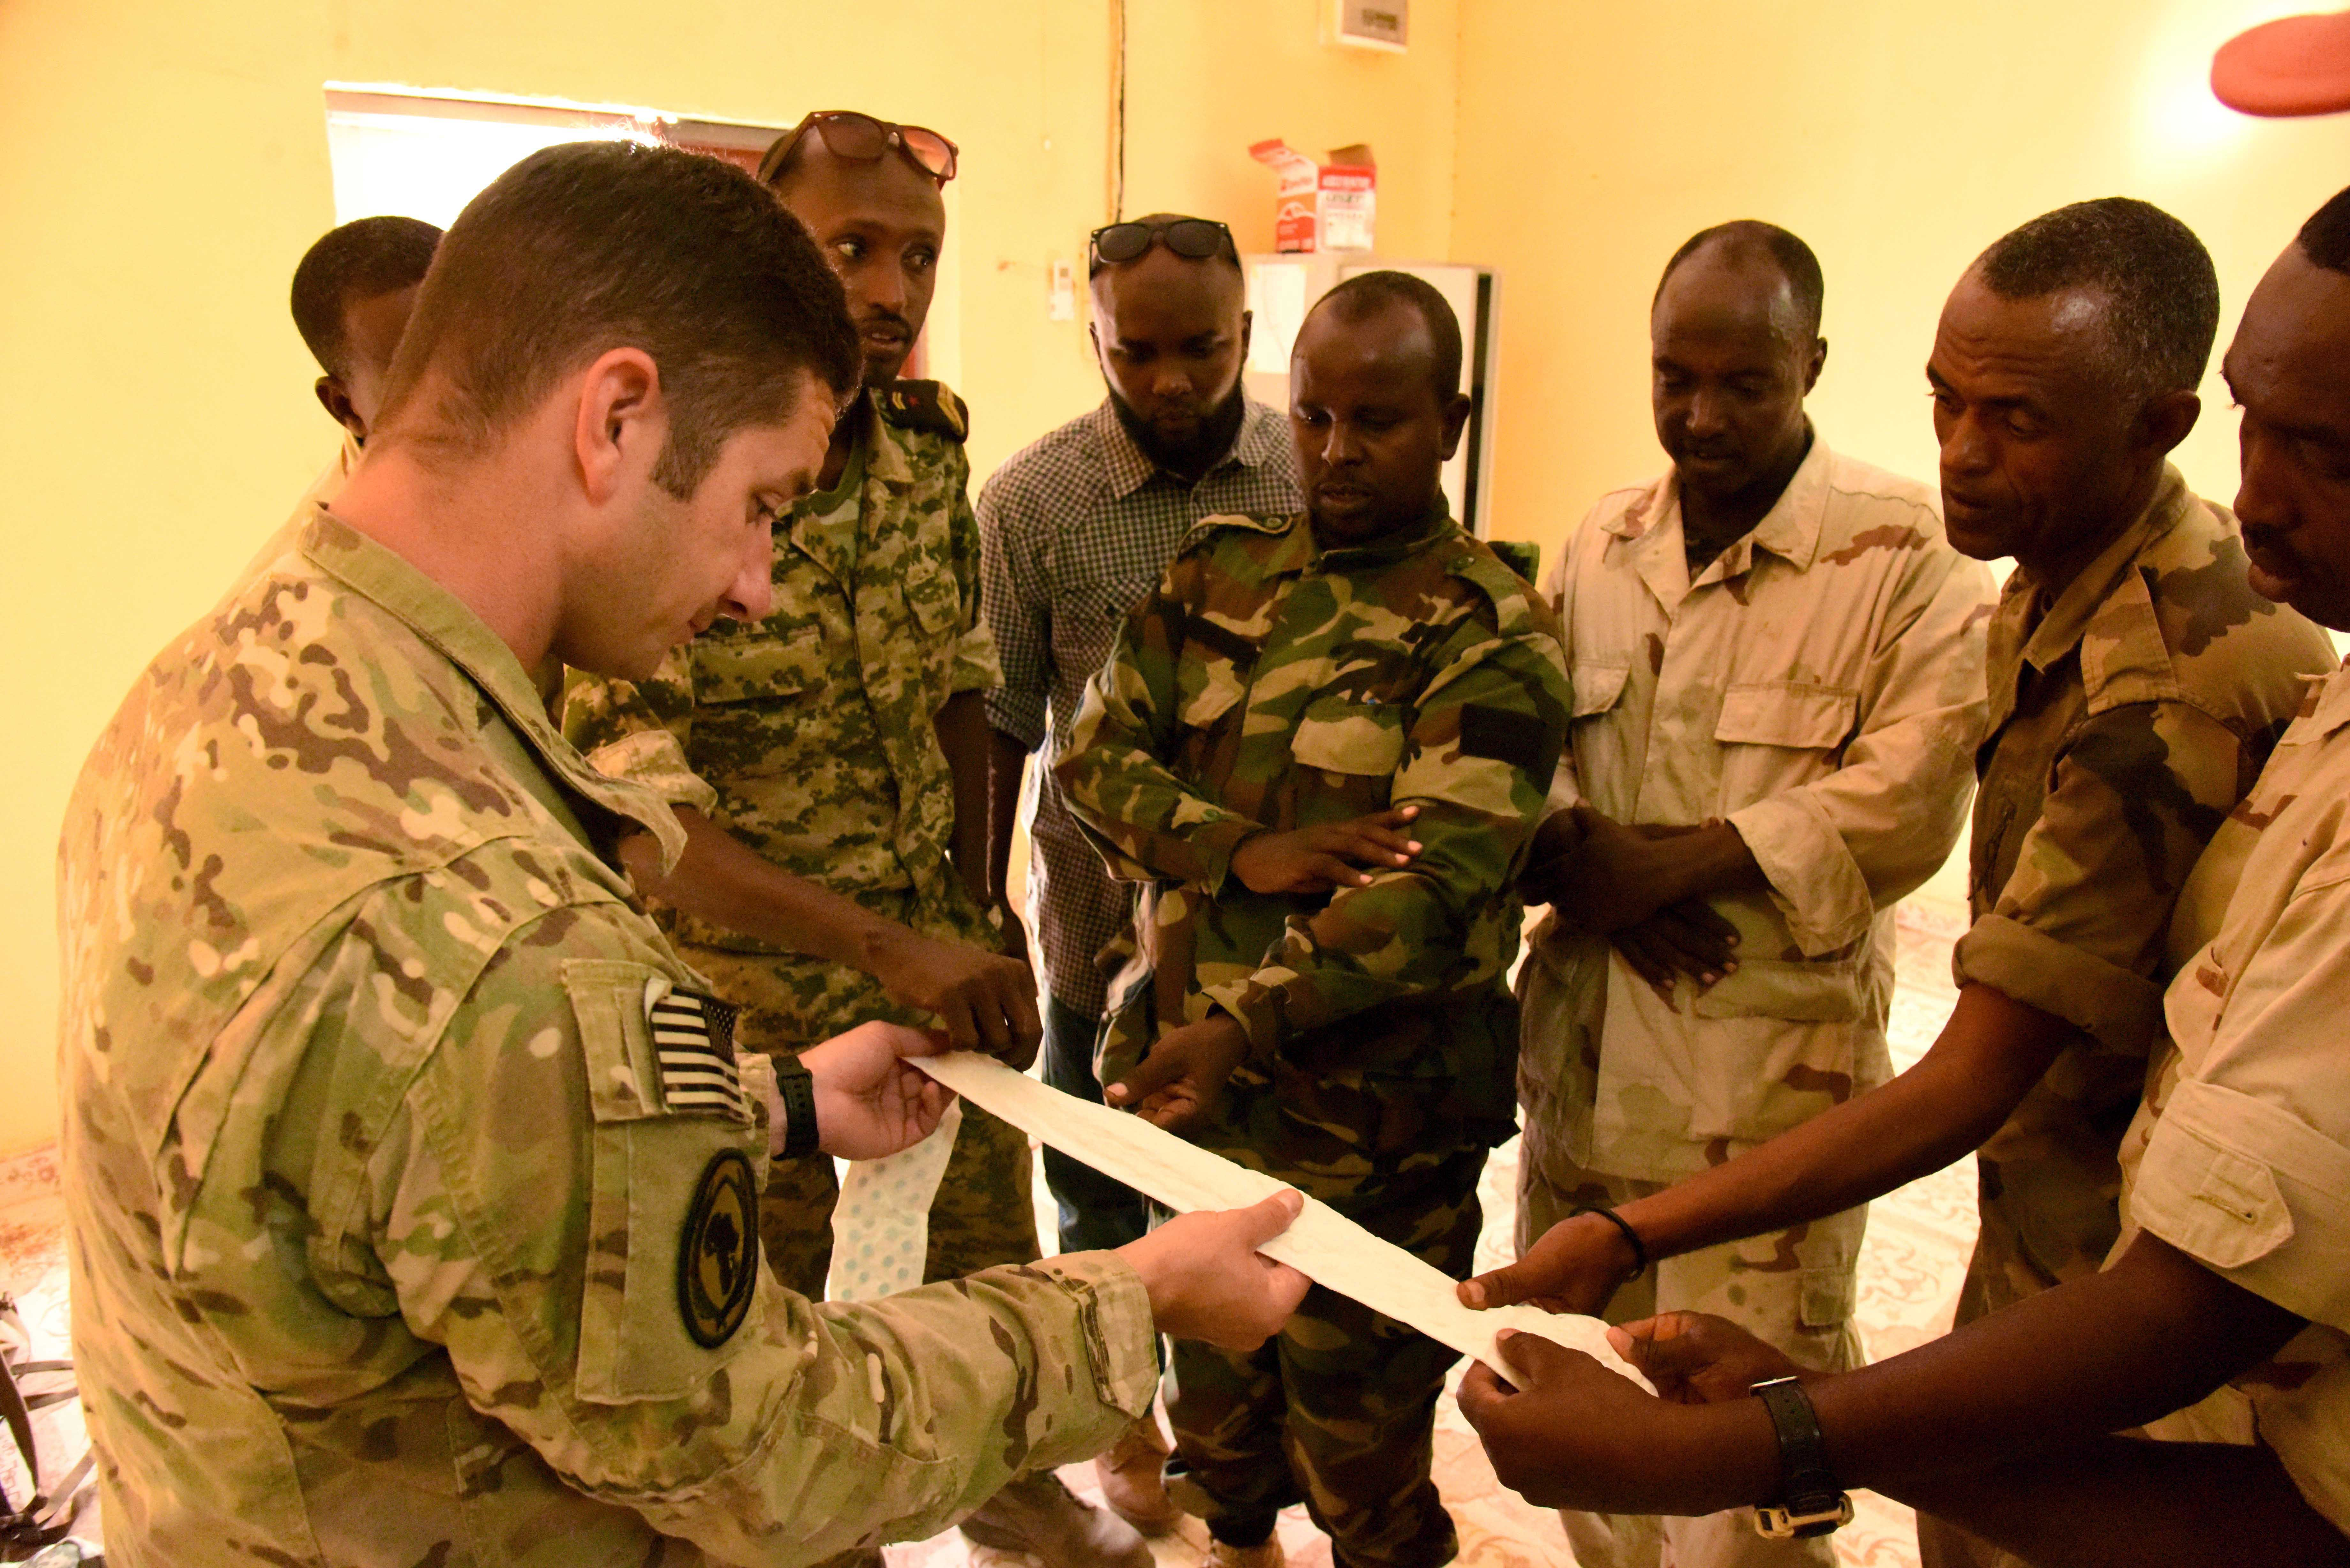 U.S. Army Sgt. Scott Winkler, 6th Squadron, 8th Cavalry Regiment combat medic, shows Djiboutian Armed Forces (FAD) soldiers bandages that have liquid absorbing pellets during a Combat Lifesaver Course at the Central Management of Materials and Engineering Services compound, Djibouti, Mar. 5, 2016. FAD soldiers learned how to diagnose, treat and transport injuries in a combat situation. (U.S. Air Force photo by Staff Sgt. Victoria Sneed)